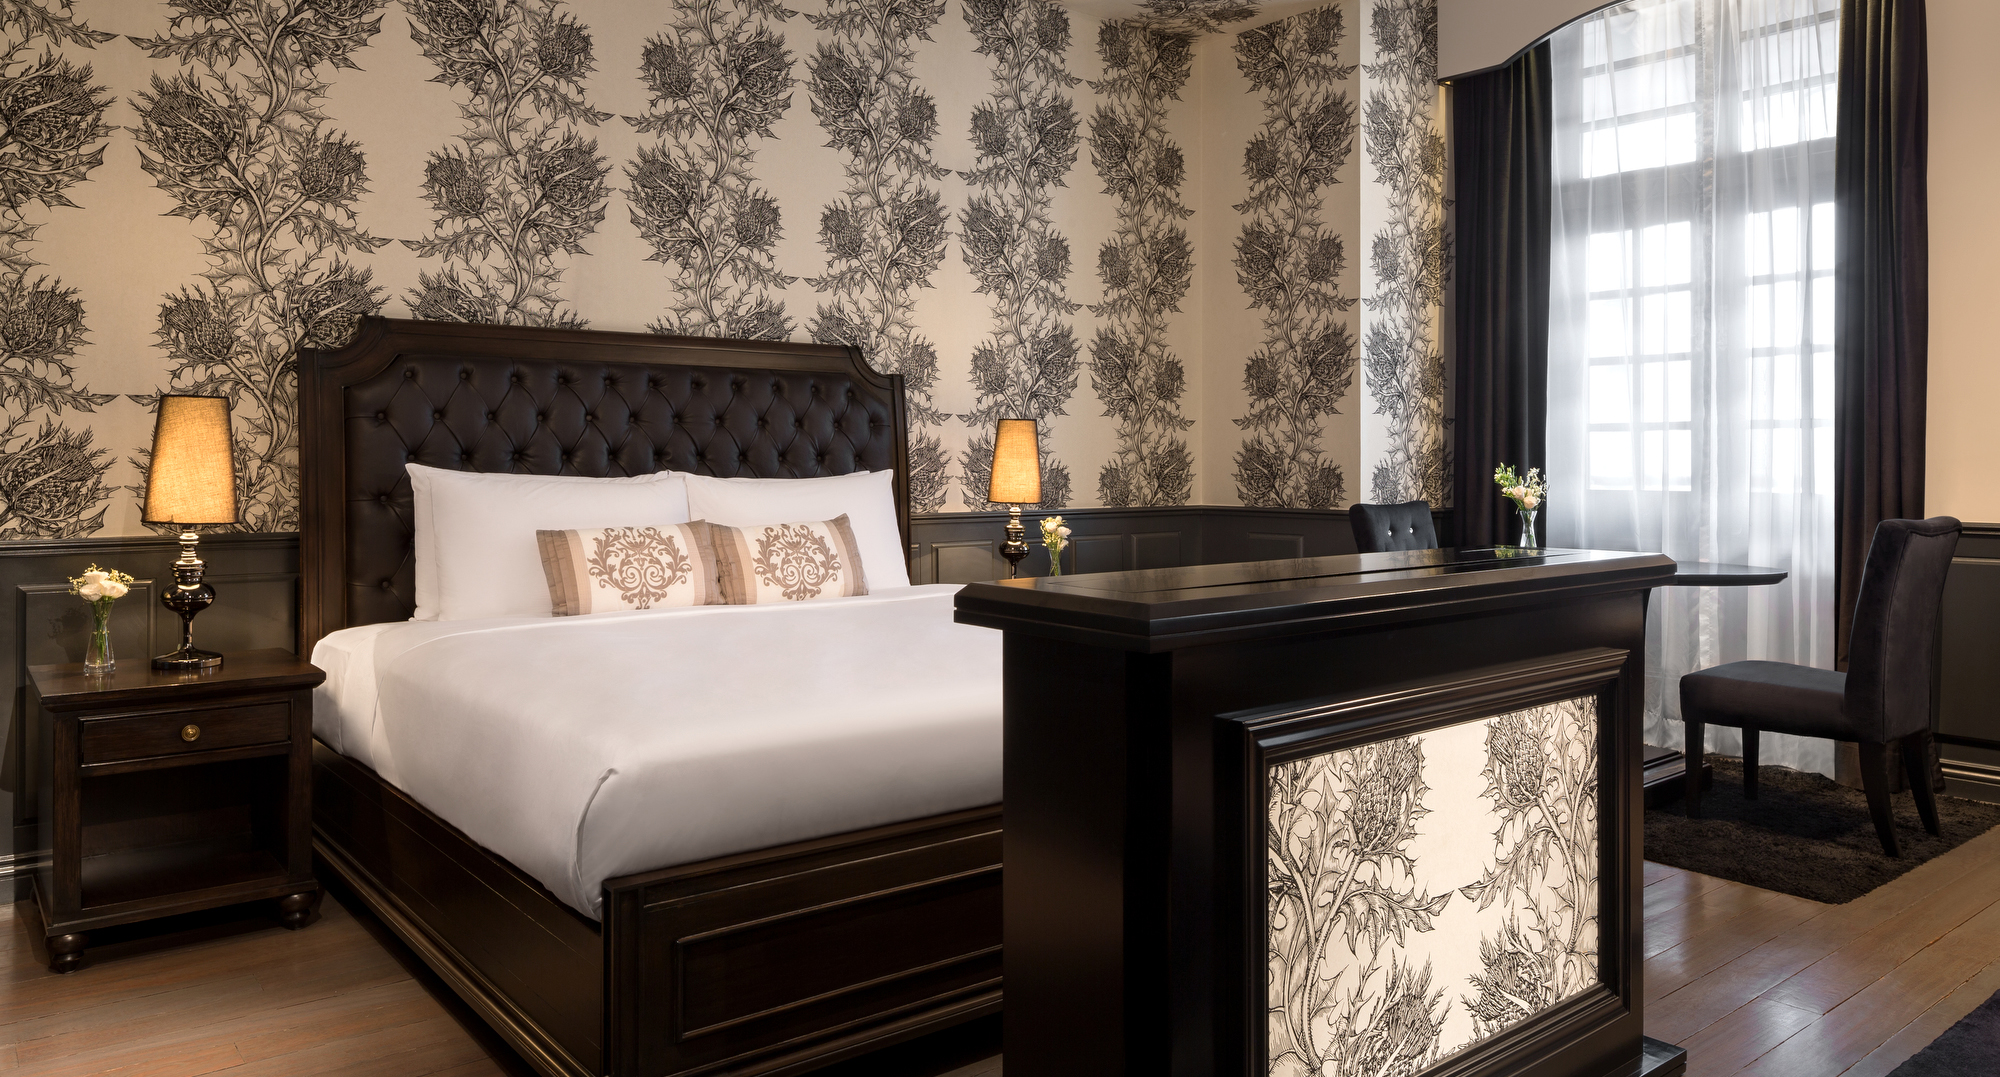 The Most Luxurious Hotel Suites In Hong Kong, by AD luxury hotel lobbies Striking Luxury Hotel Lobbies Around the World Hullett House Hotel Suites luxury hotel lobbies Striking Luxury Hotel Lobbies Around the World Hullett House Hotel Suites